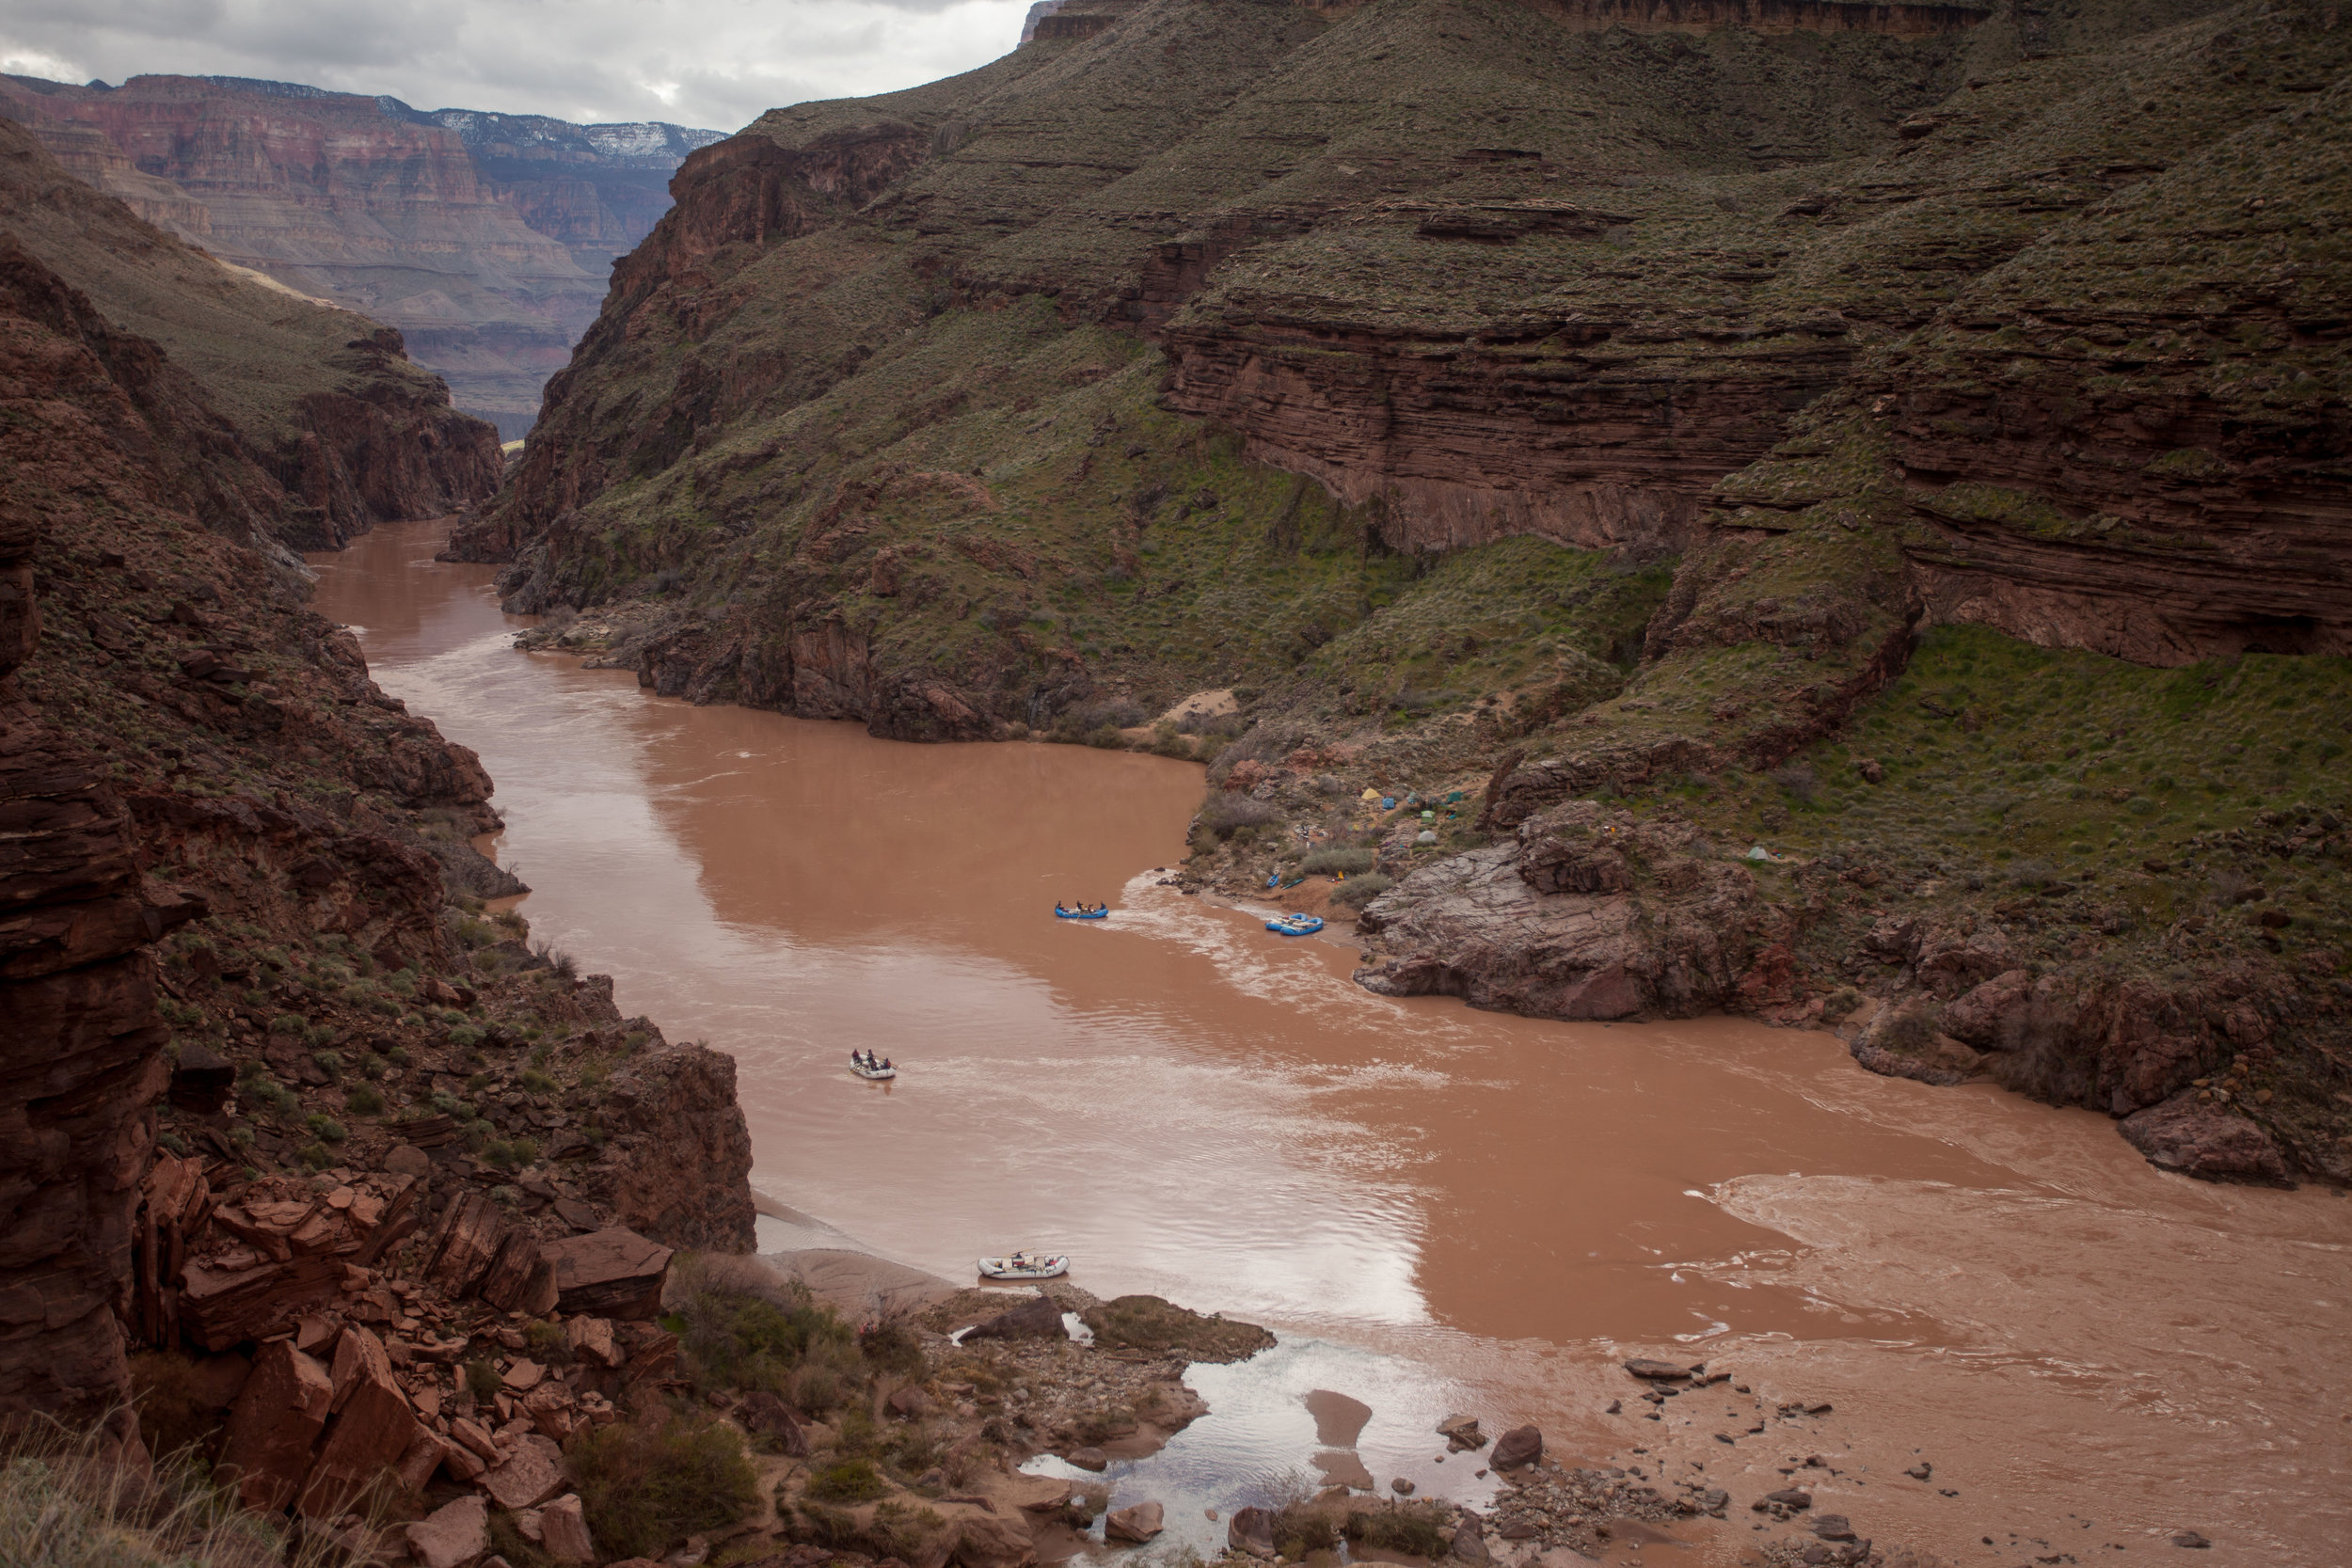 Crossing the Colorado River at Deer Creek for a lay-day exploration.